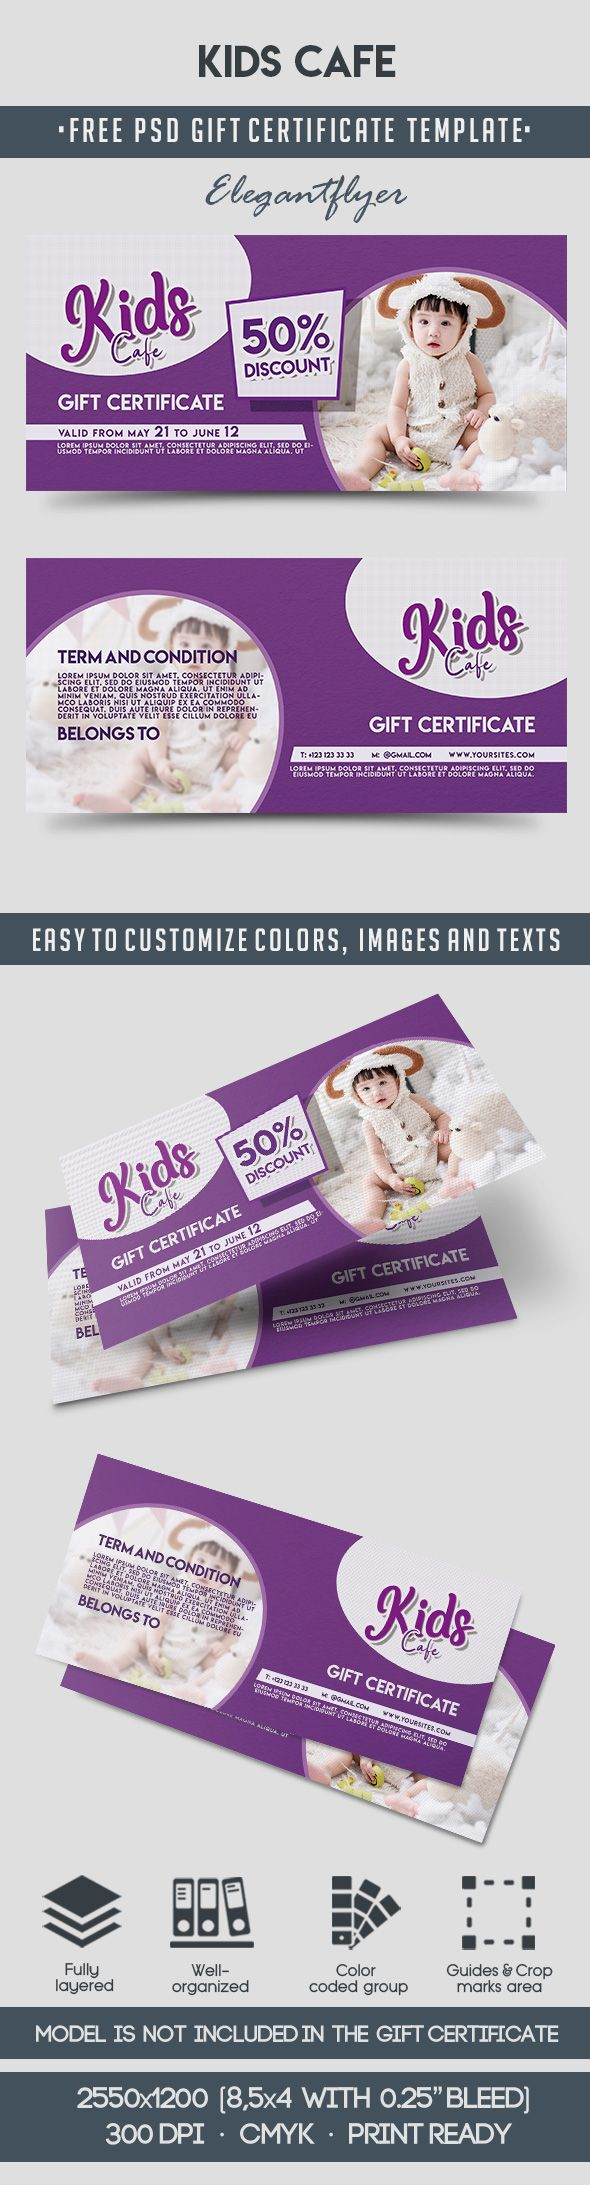 Kids Cafe – Free Gift Certificate PSD Template